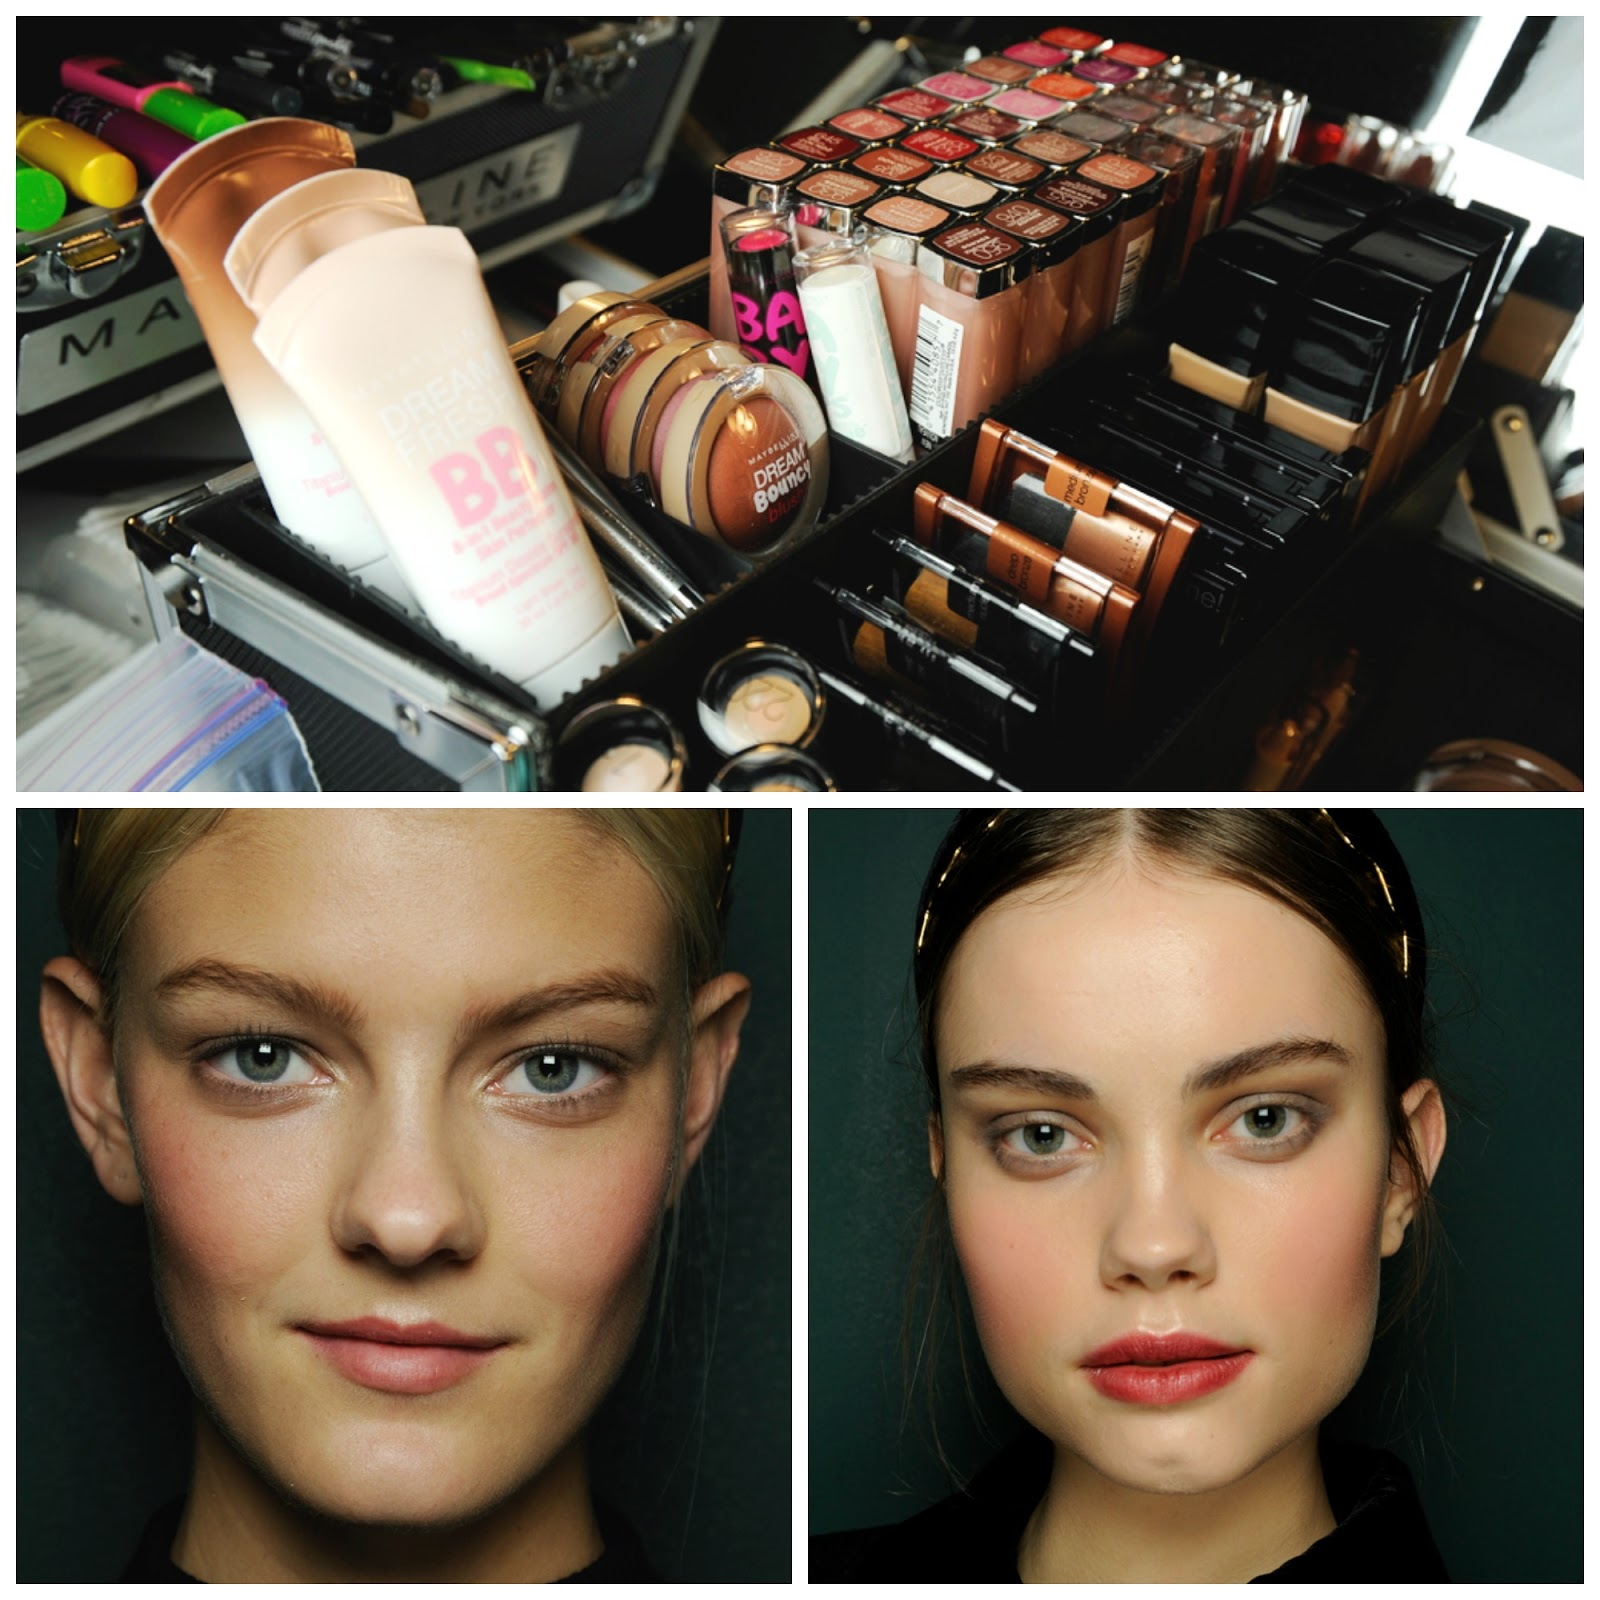 backstage makeup, Maybelline